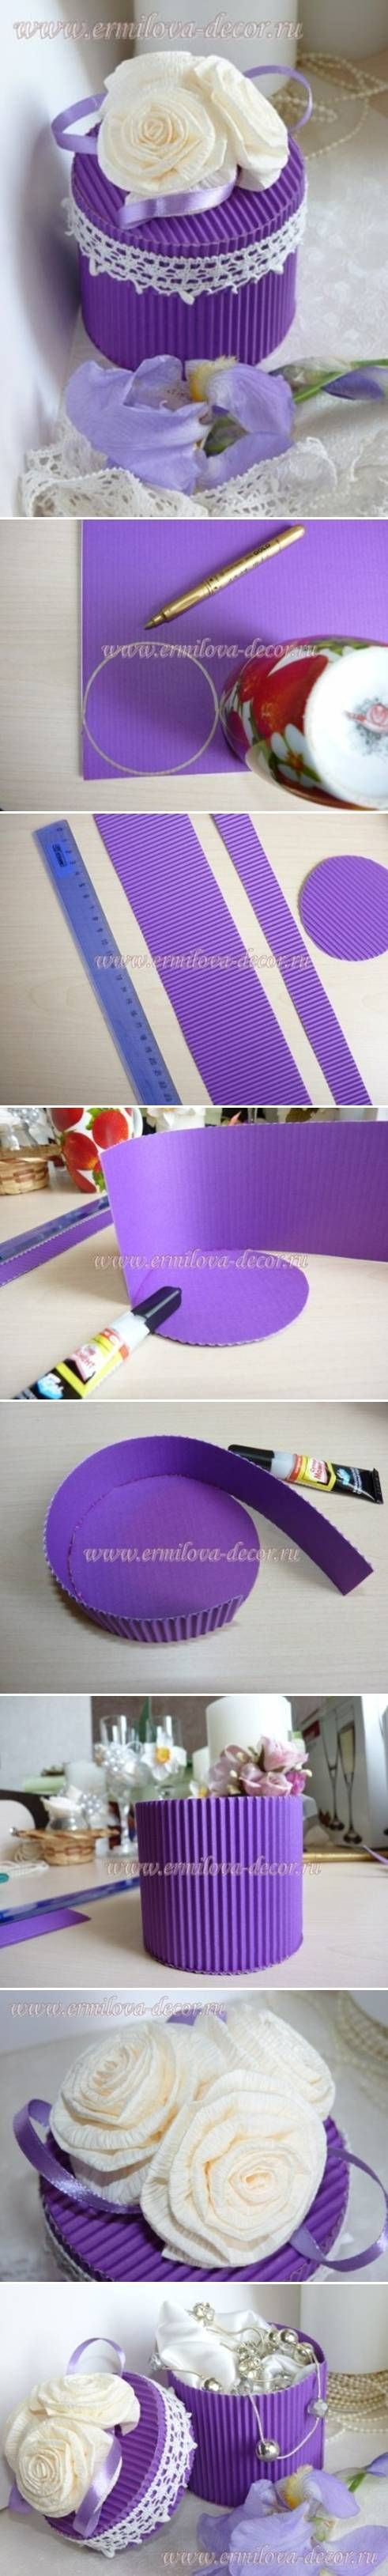 DIY Corrugated Paper Gift Box DIY Projects | UsefulDIY.com